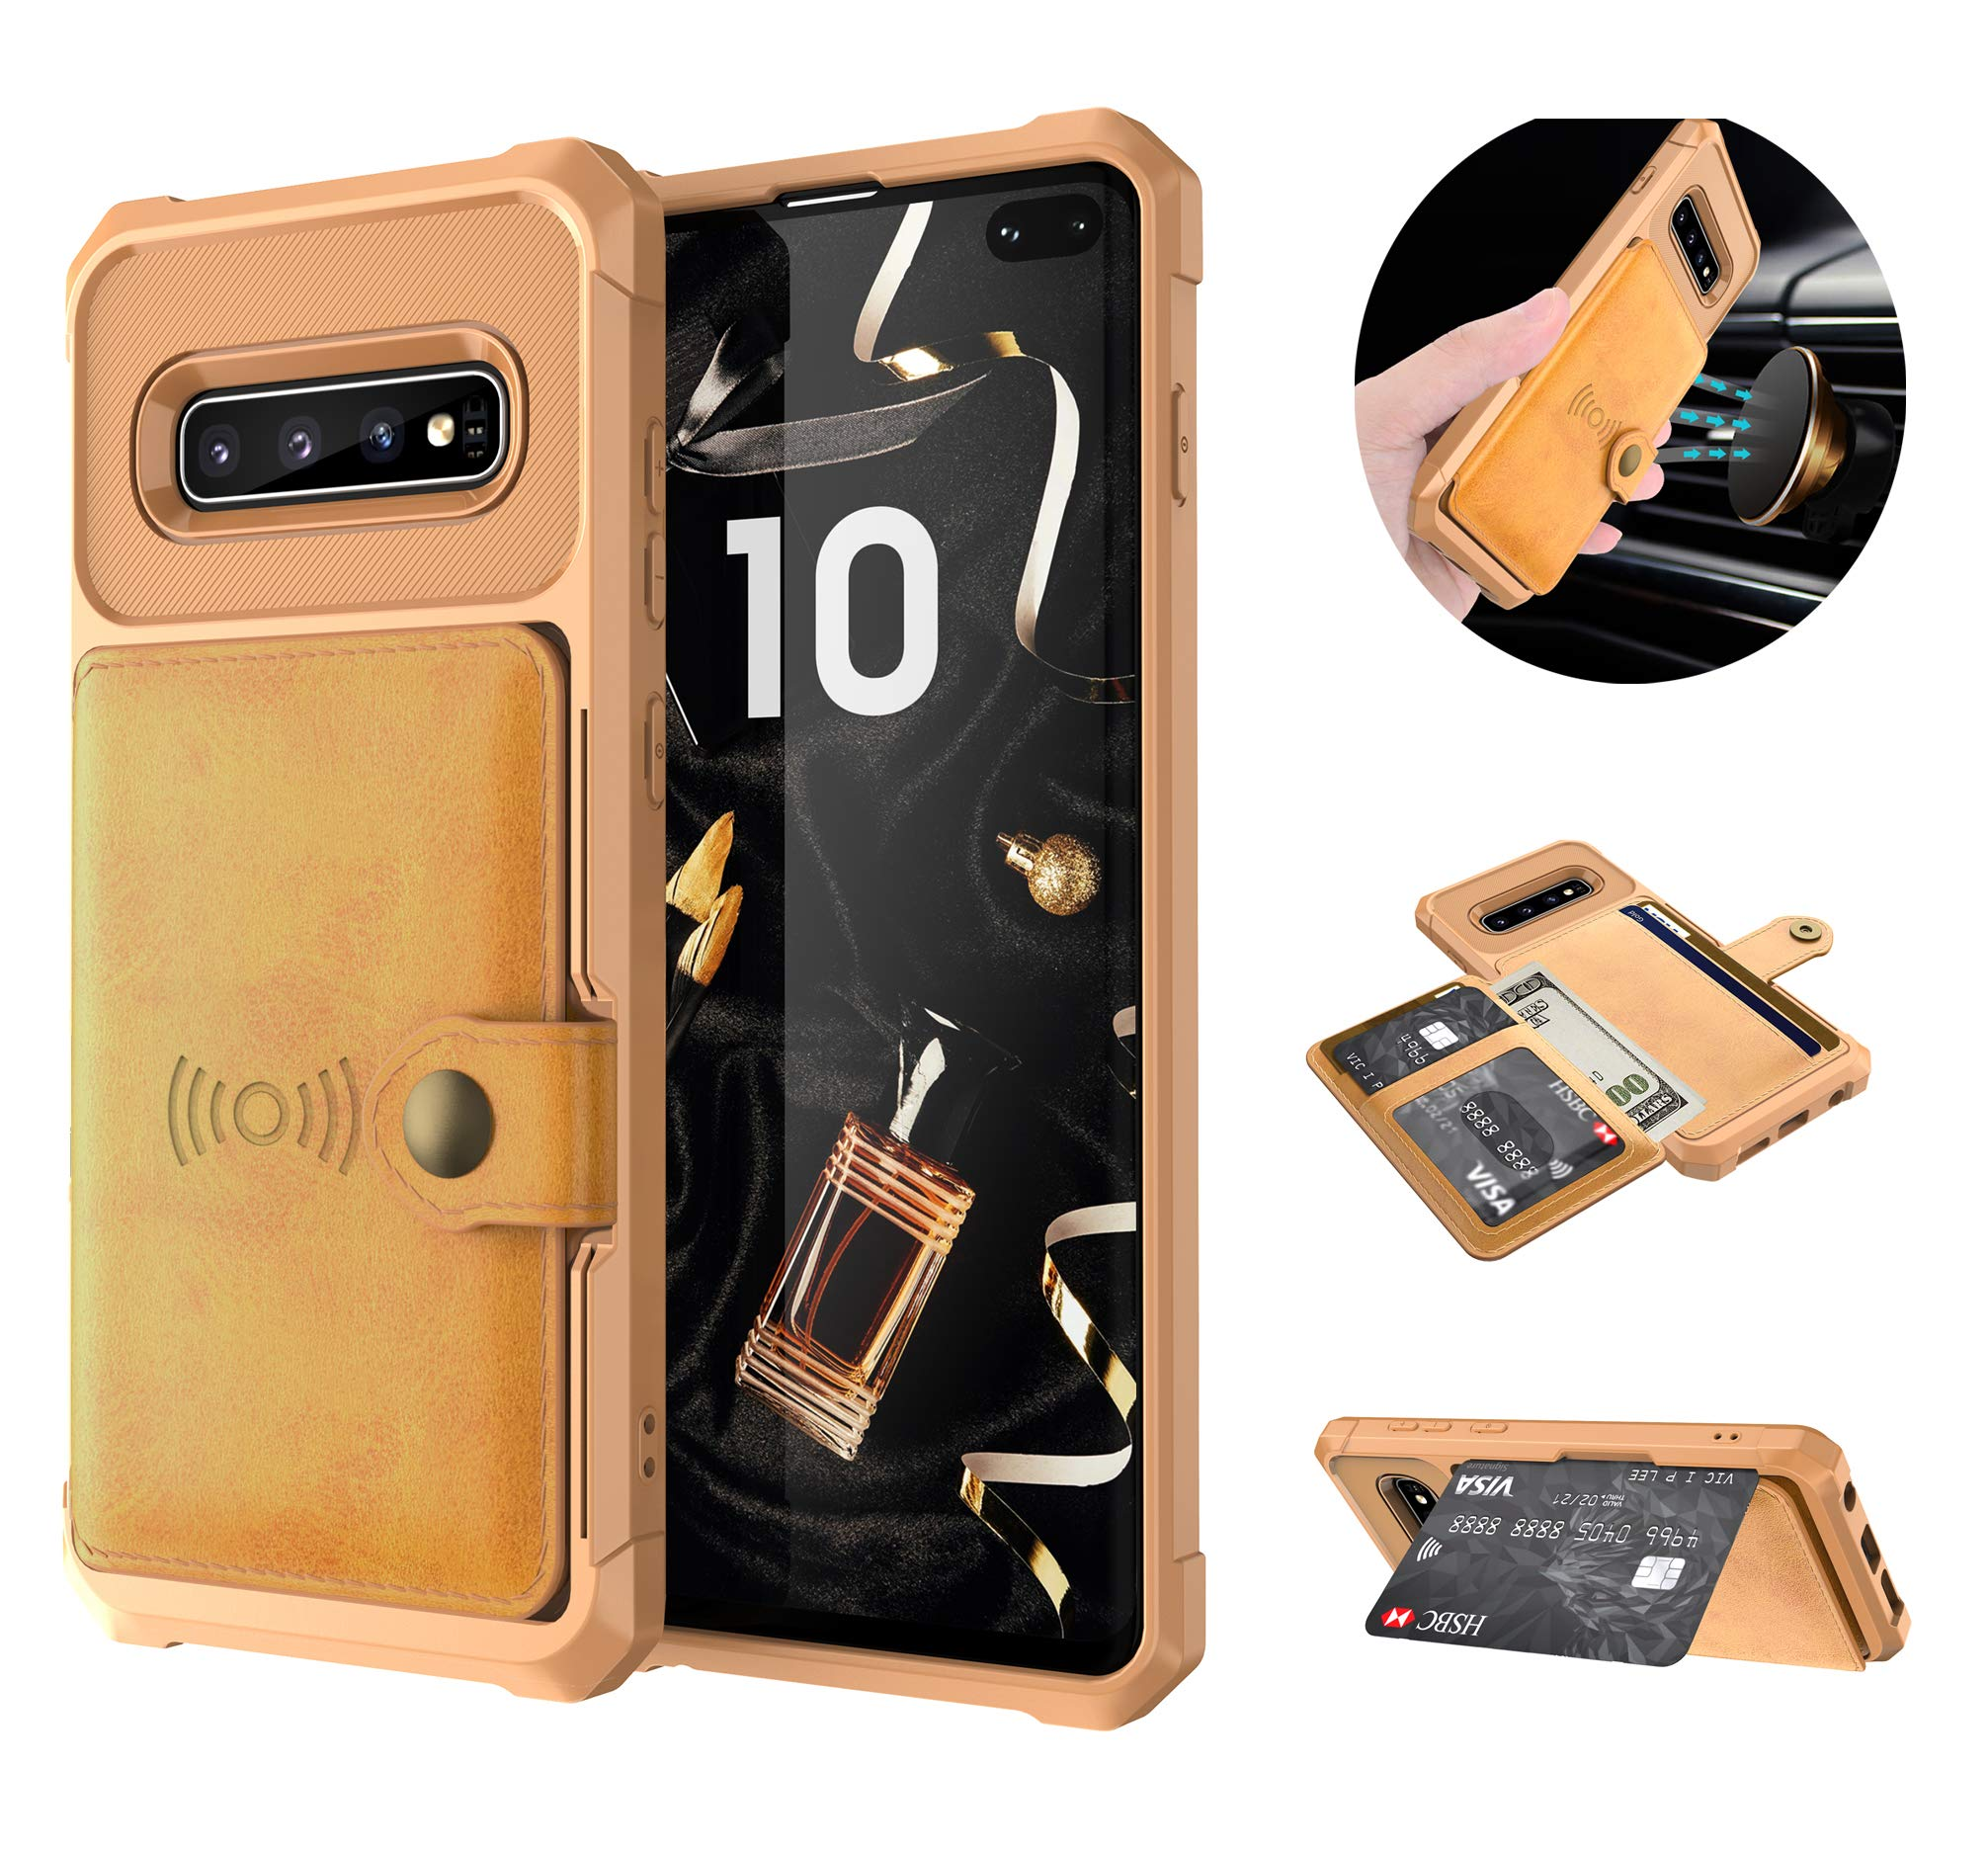 Tznzxm Galaxy S10+ Plus Wireless Charging Wallet Case with Credit Card Holder Kickstand Rubber [Work with Magnetic Car Mount] Durable Flip Shockproof Protective Cover for Galaxy S10 Plus Brown by Tznzxm